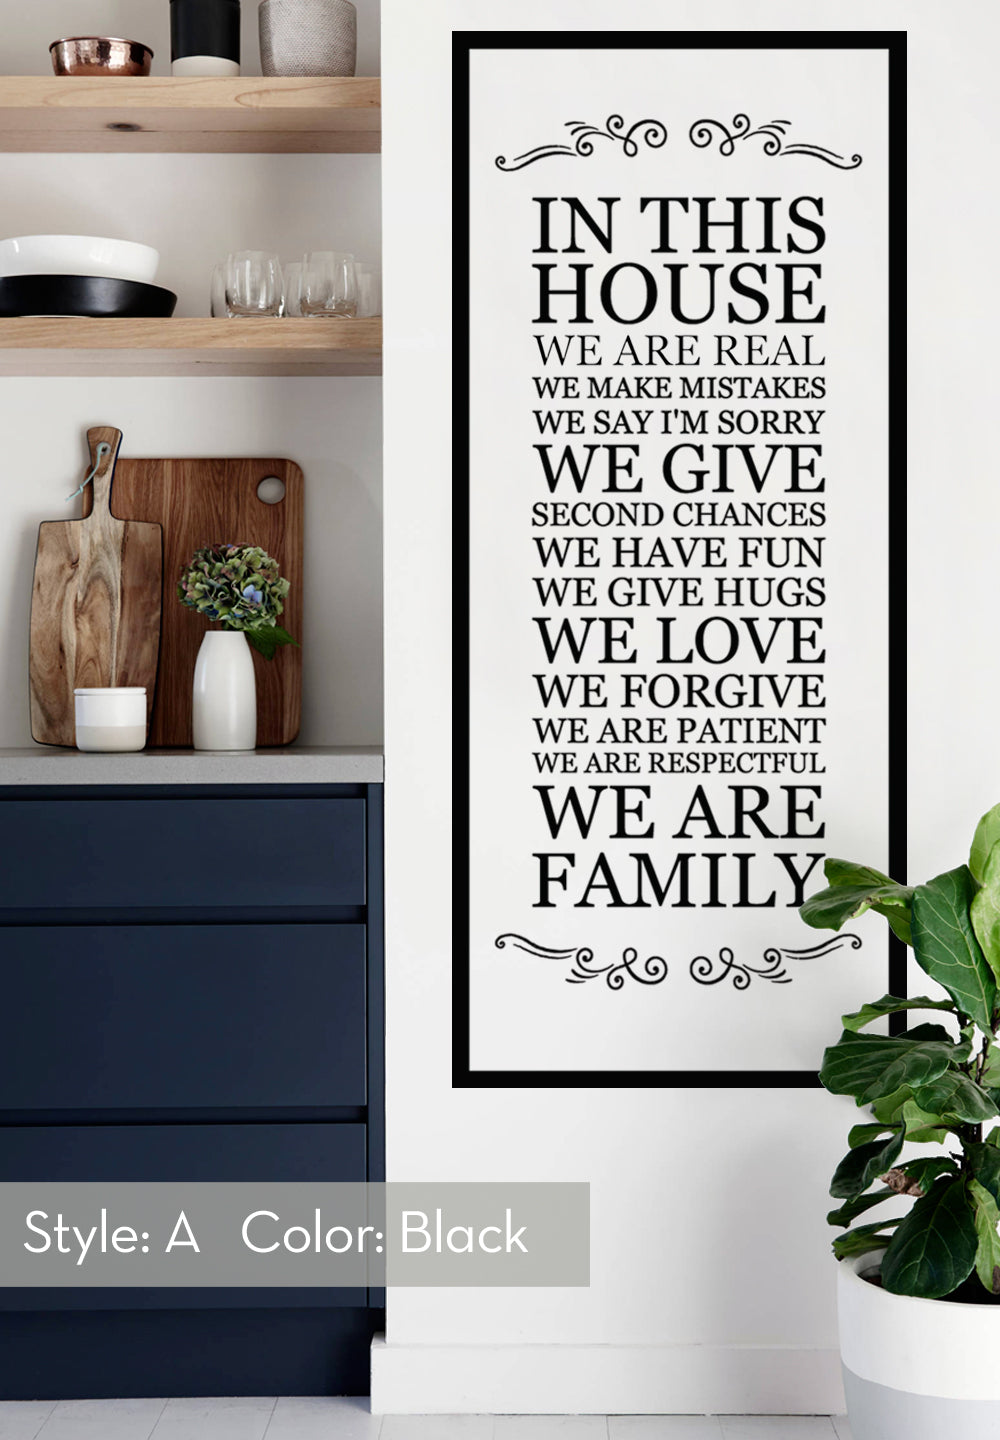 In This House Wall Decal, House Rules Decal